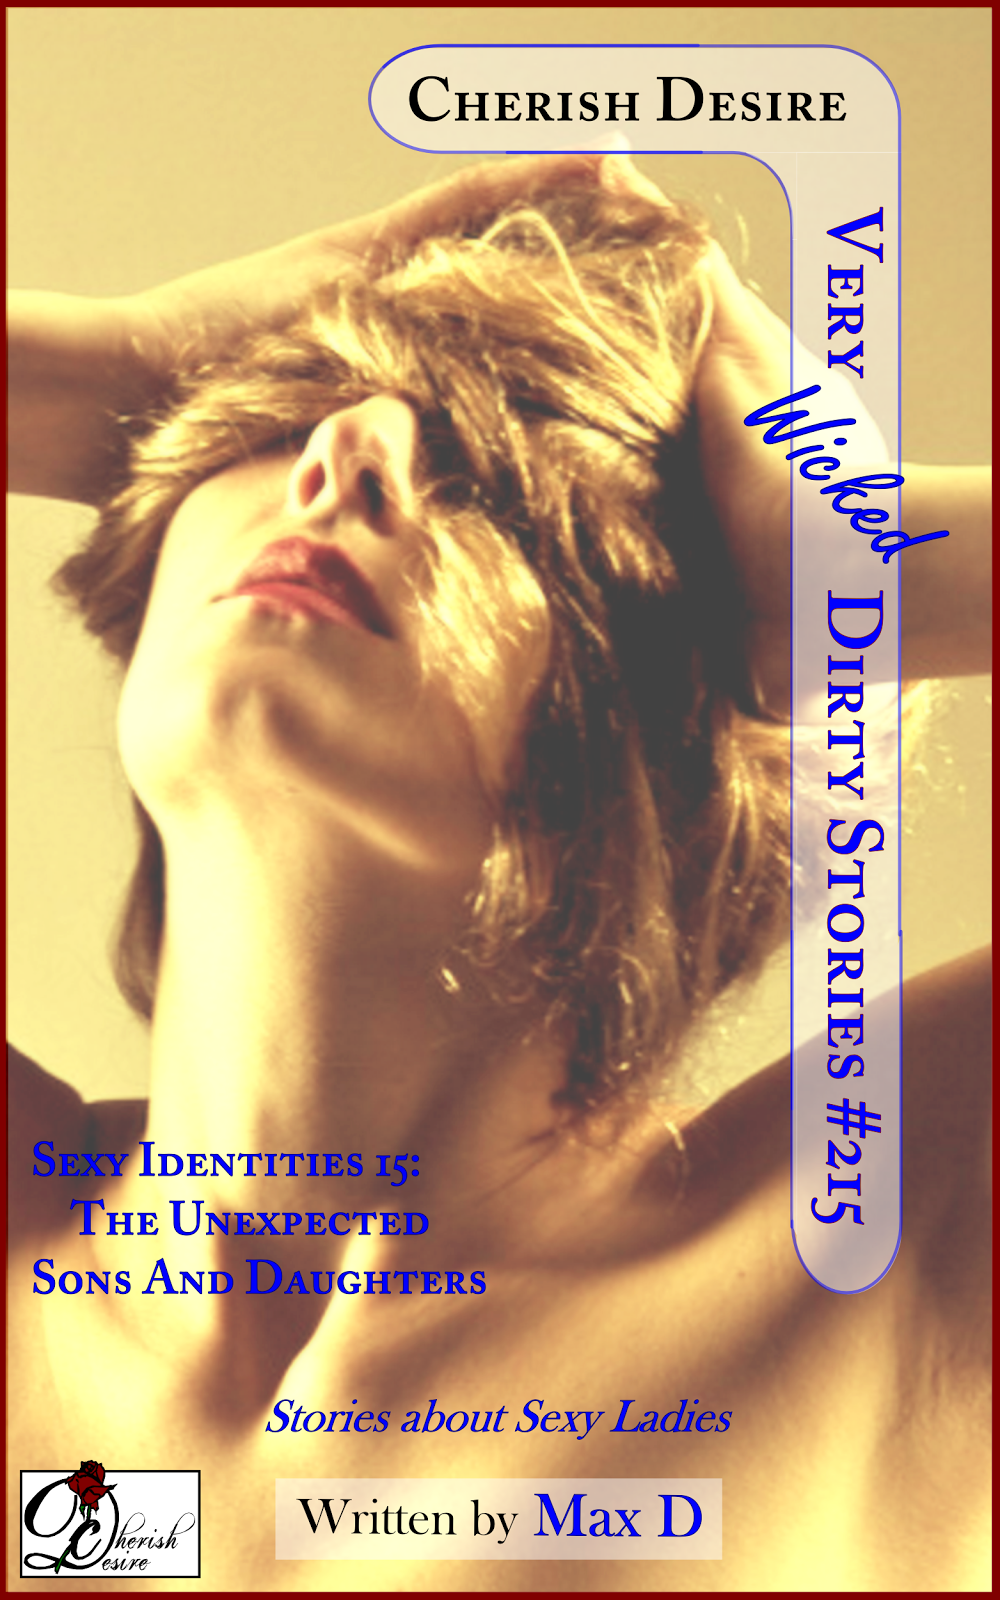 Cherish Desire: Very Wicked Dirty Stories #215, Max D, erotica